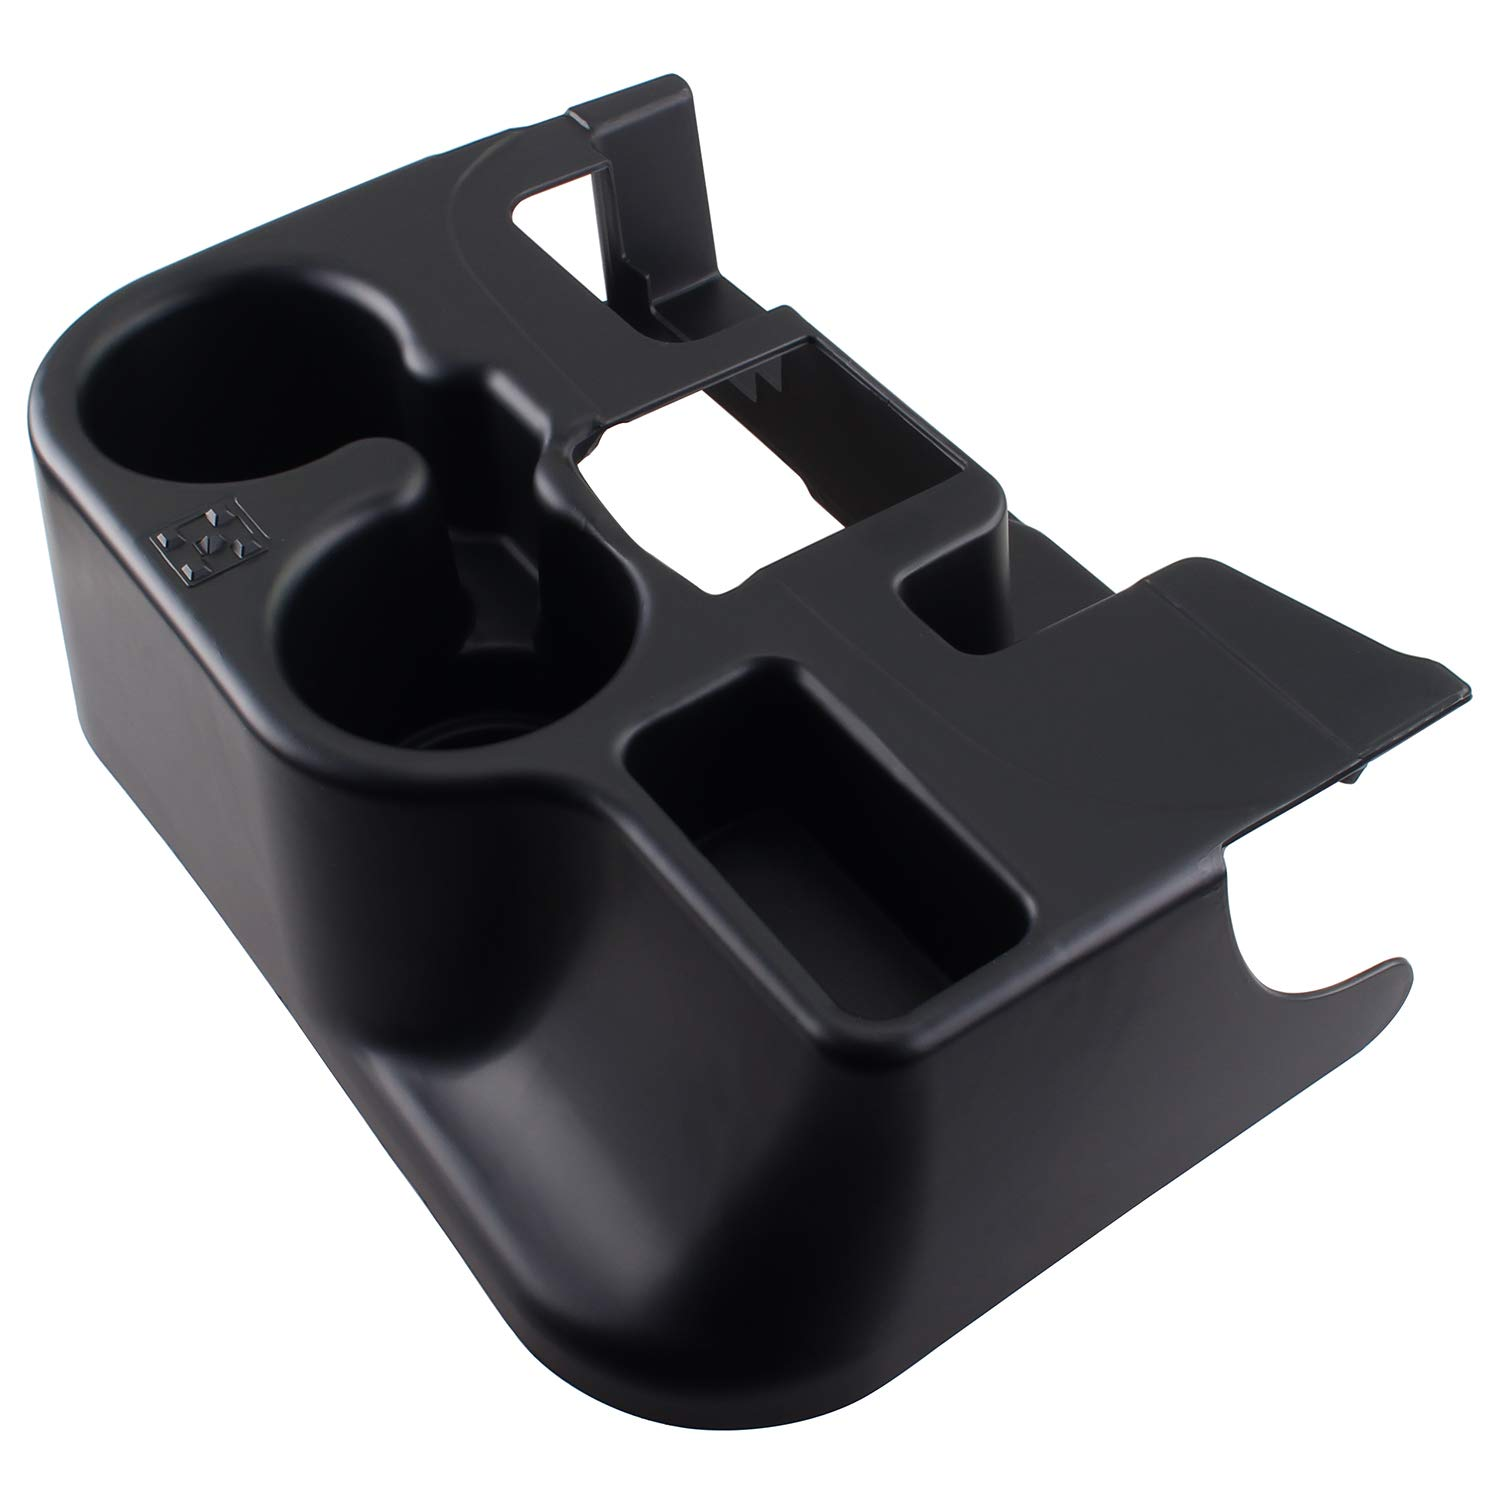 Heart Horse Black add-on Cup Holder/Center Console cupholder for 2003-2012 Dodge RAM 1500/2500/3500 (Fits Cups)